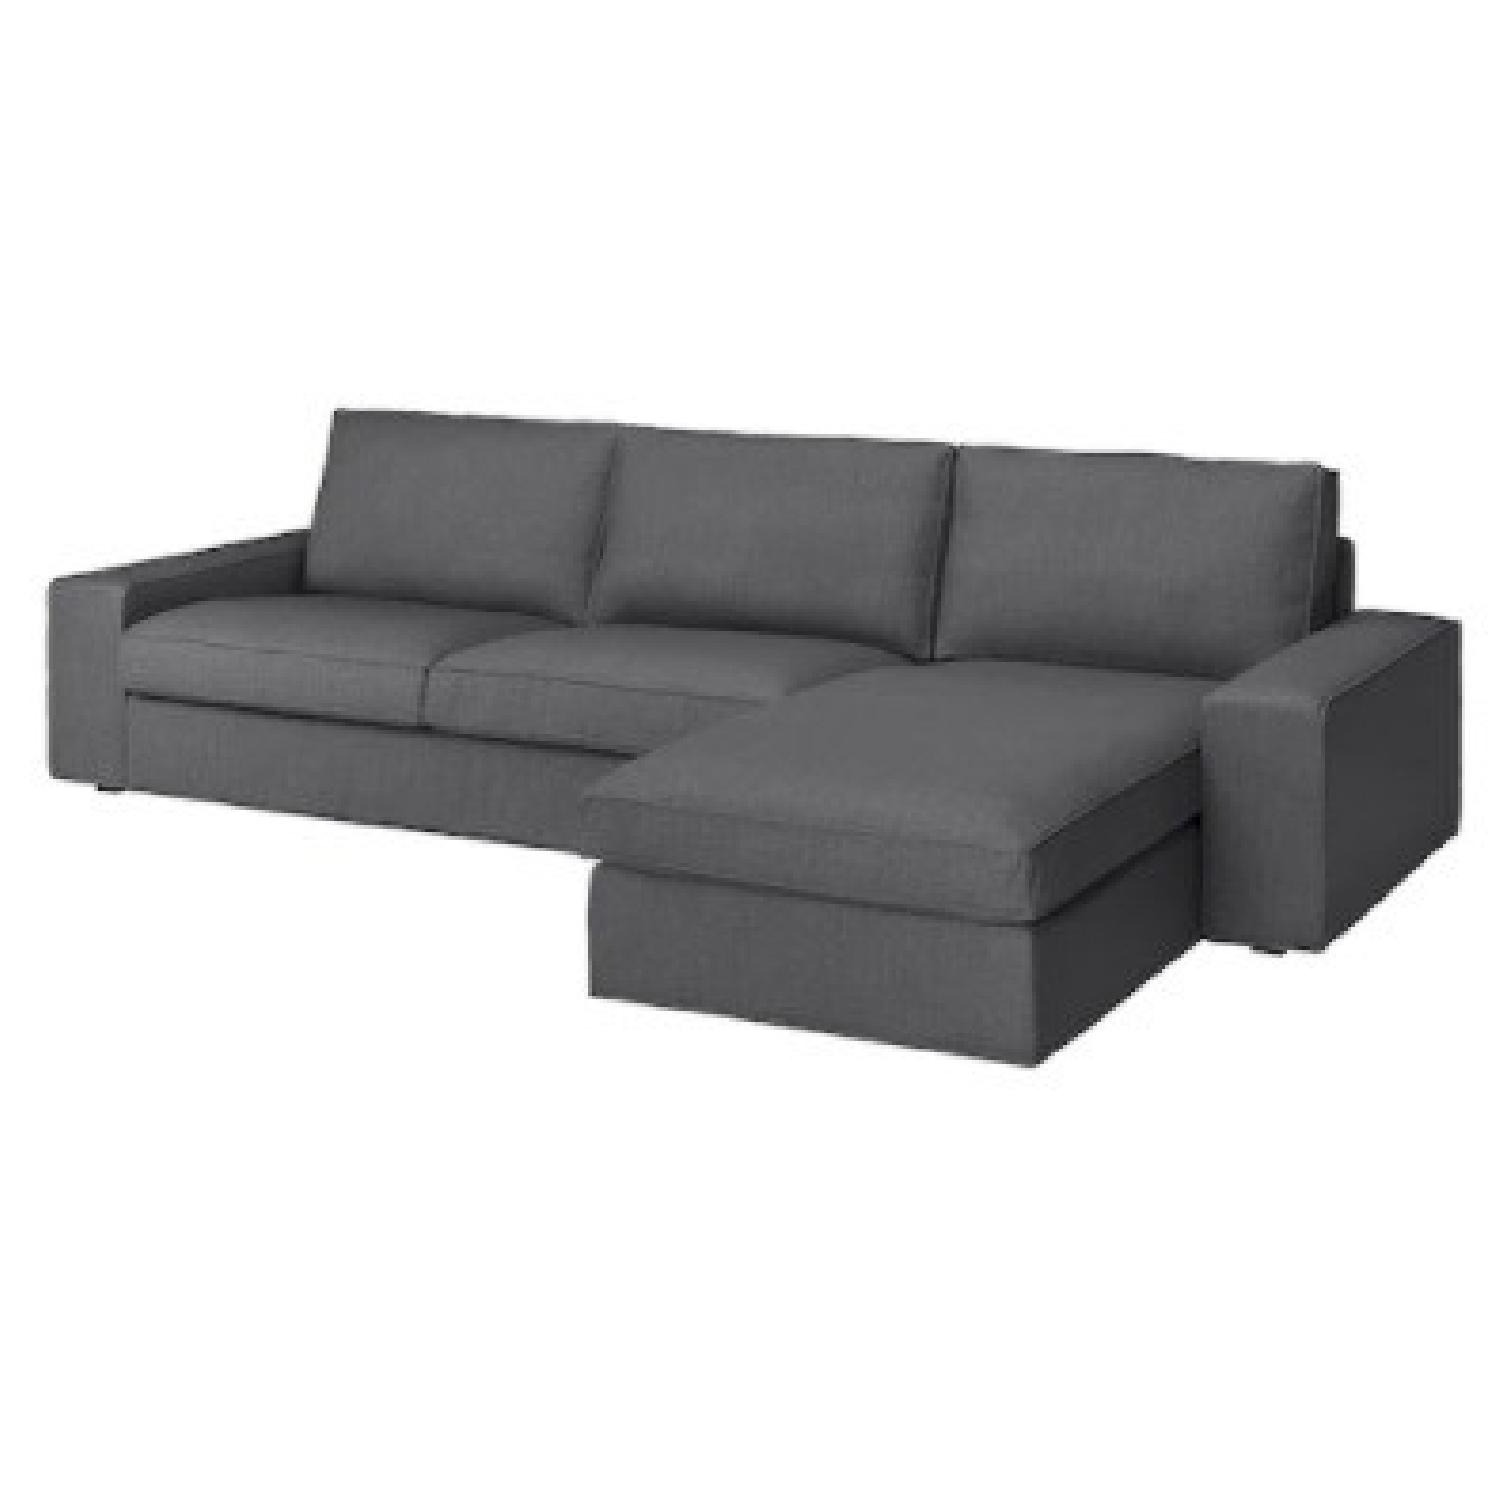 IKEA 4 Person L Shaped Couch - image-1